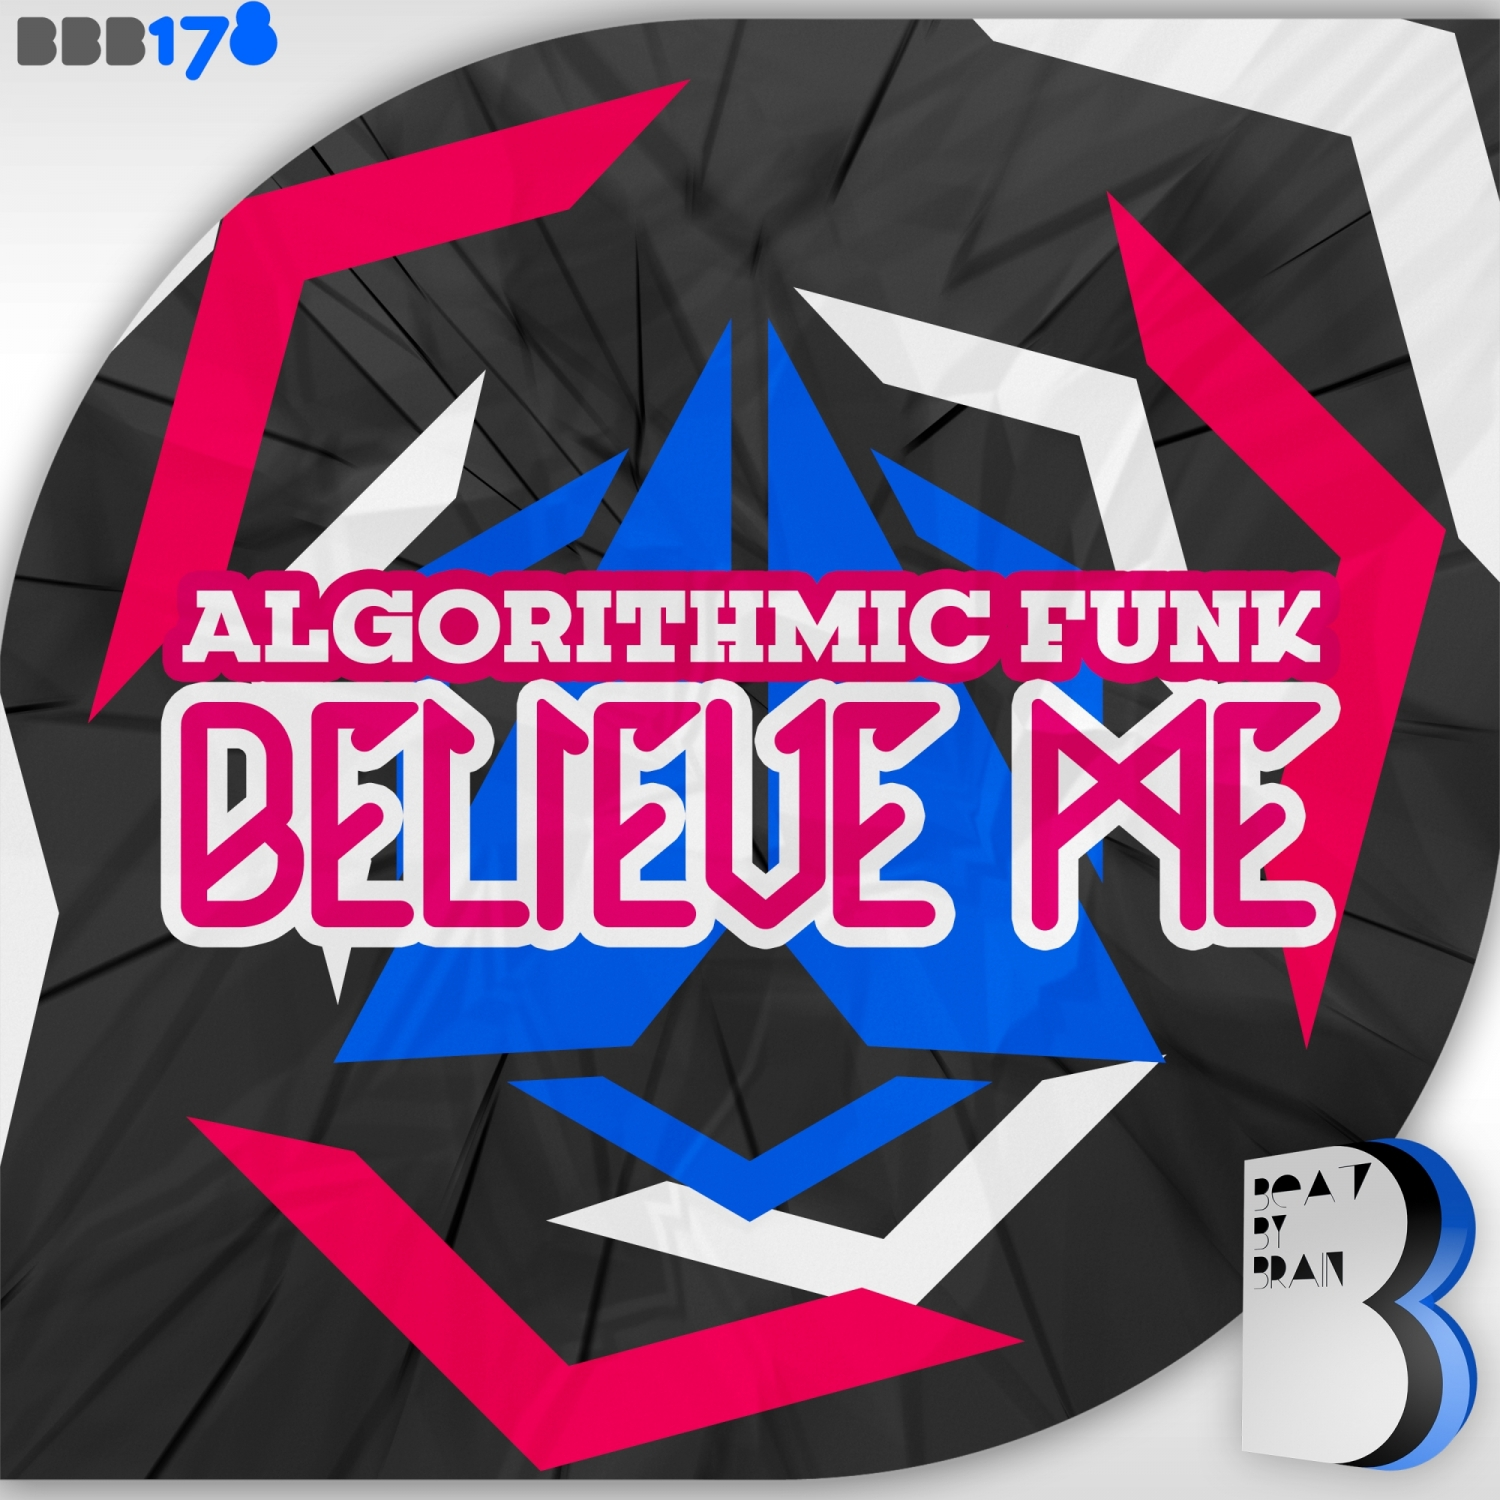 Algorithmic Funk - Believe Me (Original Mix)